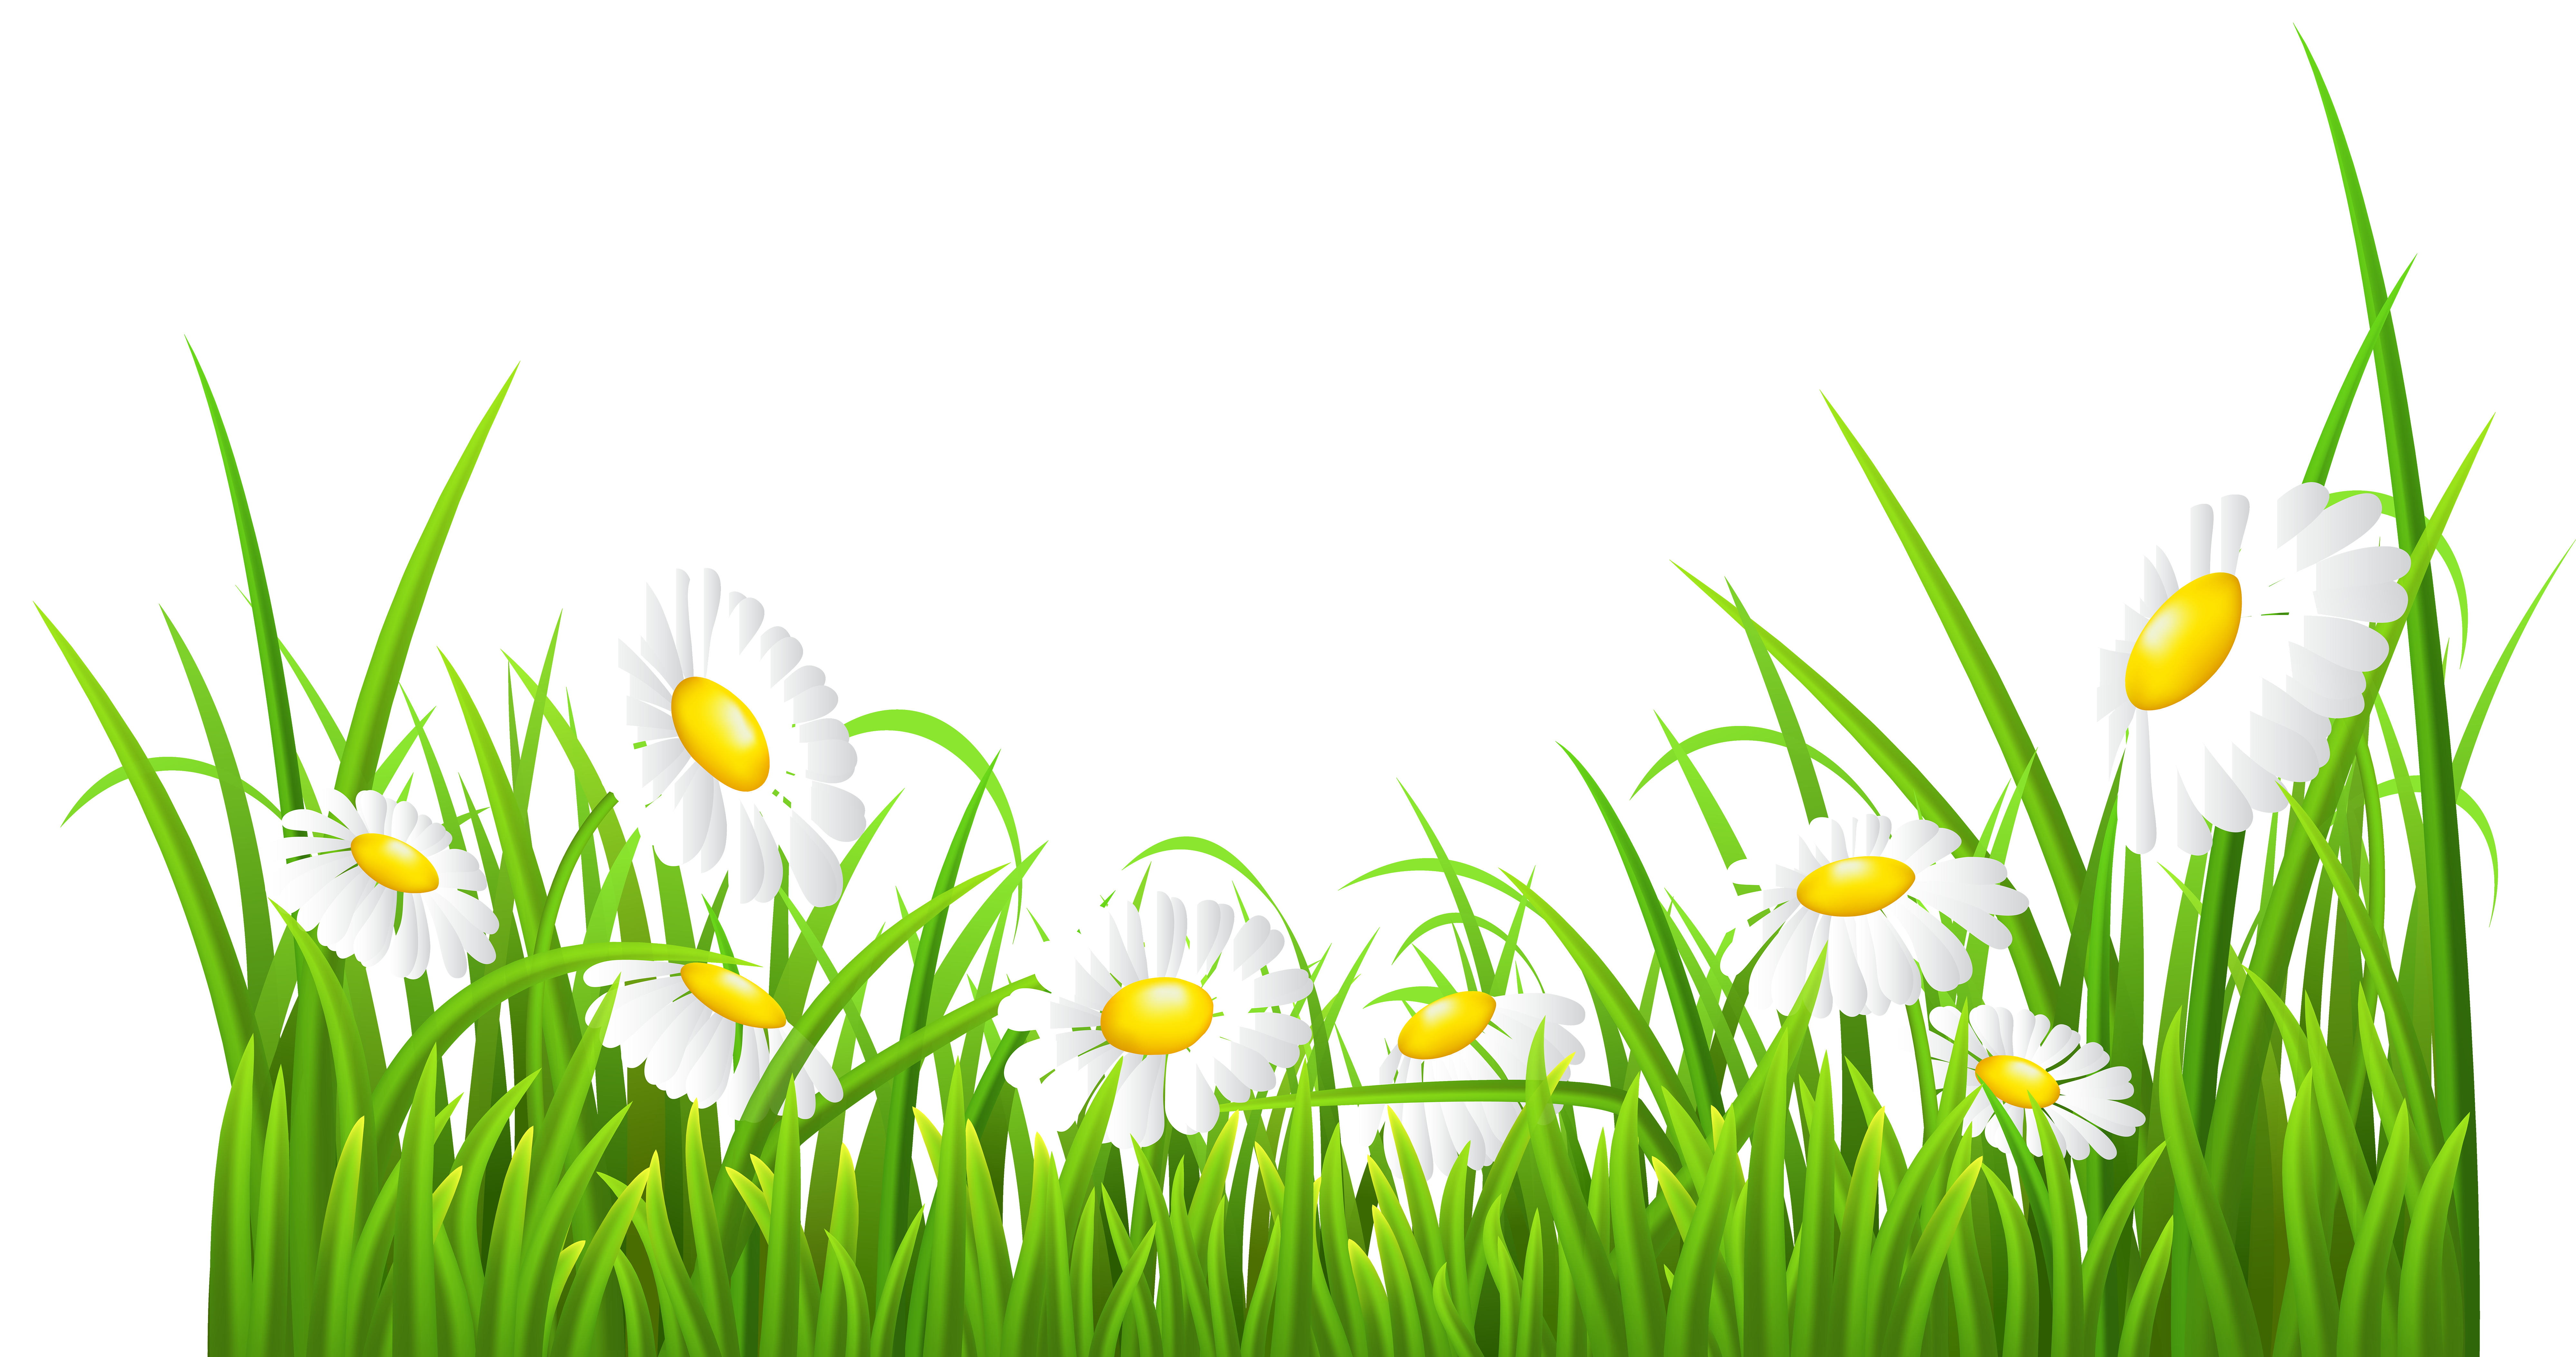 Grass clipart spring. Daisy for free and